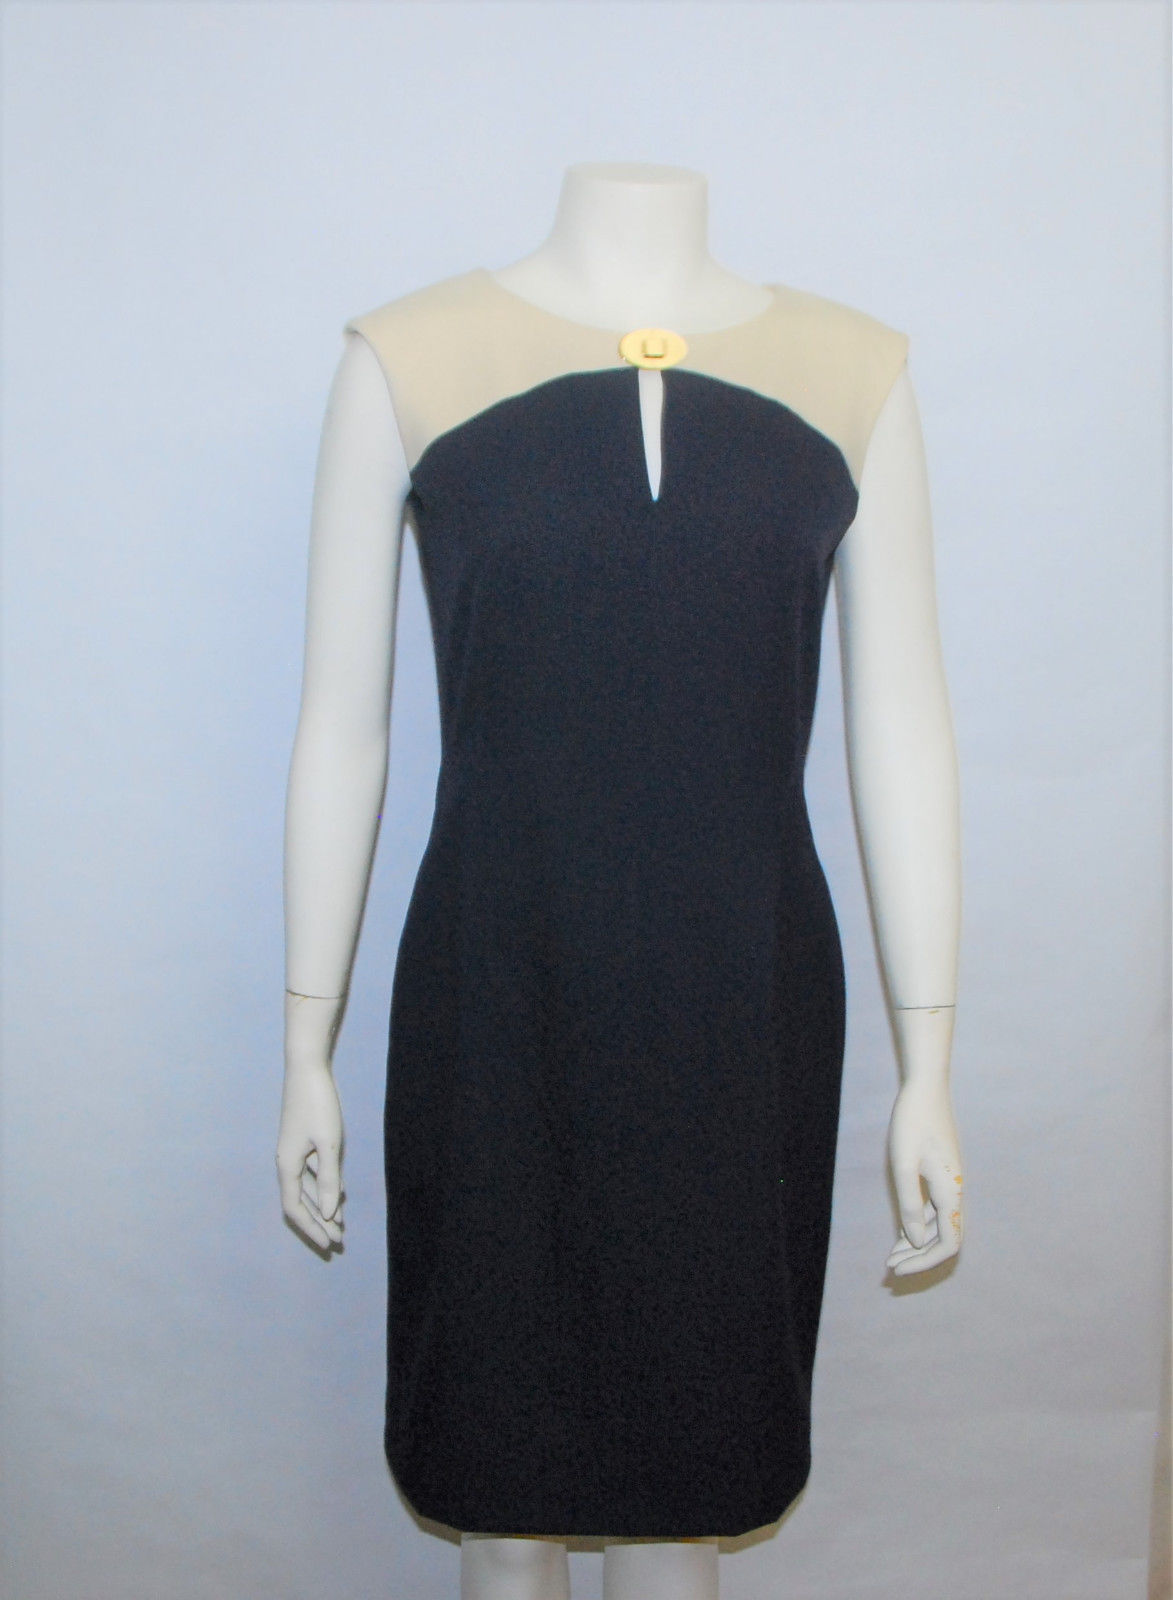 Primary image for Calvin Klein Blue Beige Sleeveless Sheath Business Party Dress 4% Spandex Size 6